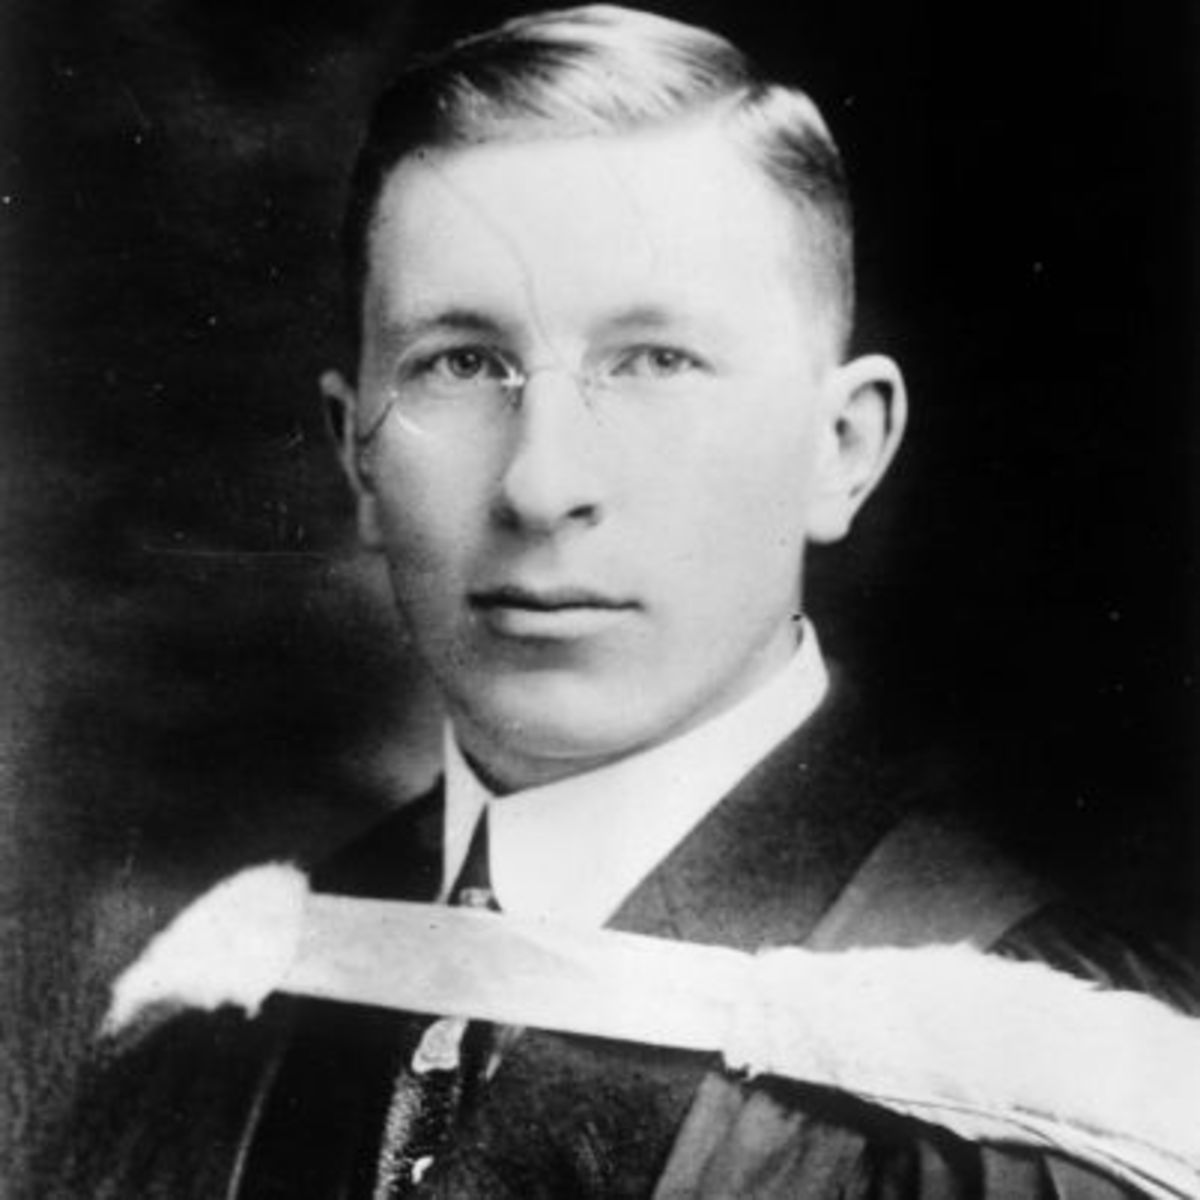 an introduction to the life of frederick banting Banting frederick banting was thirty-one when he received the nobel prize for  his part in the discovery of insulin.